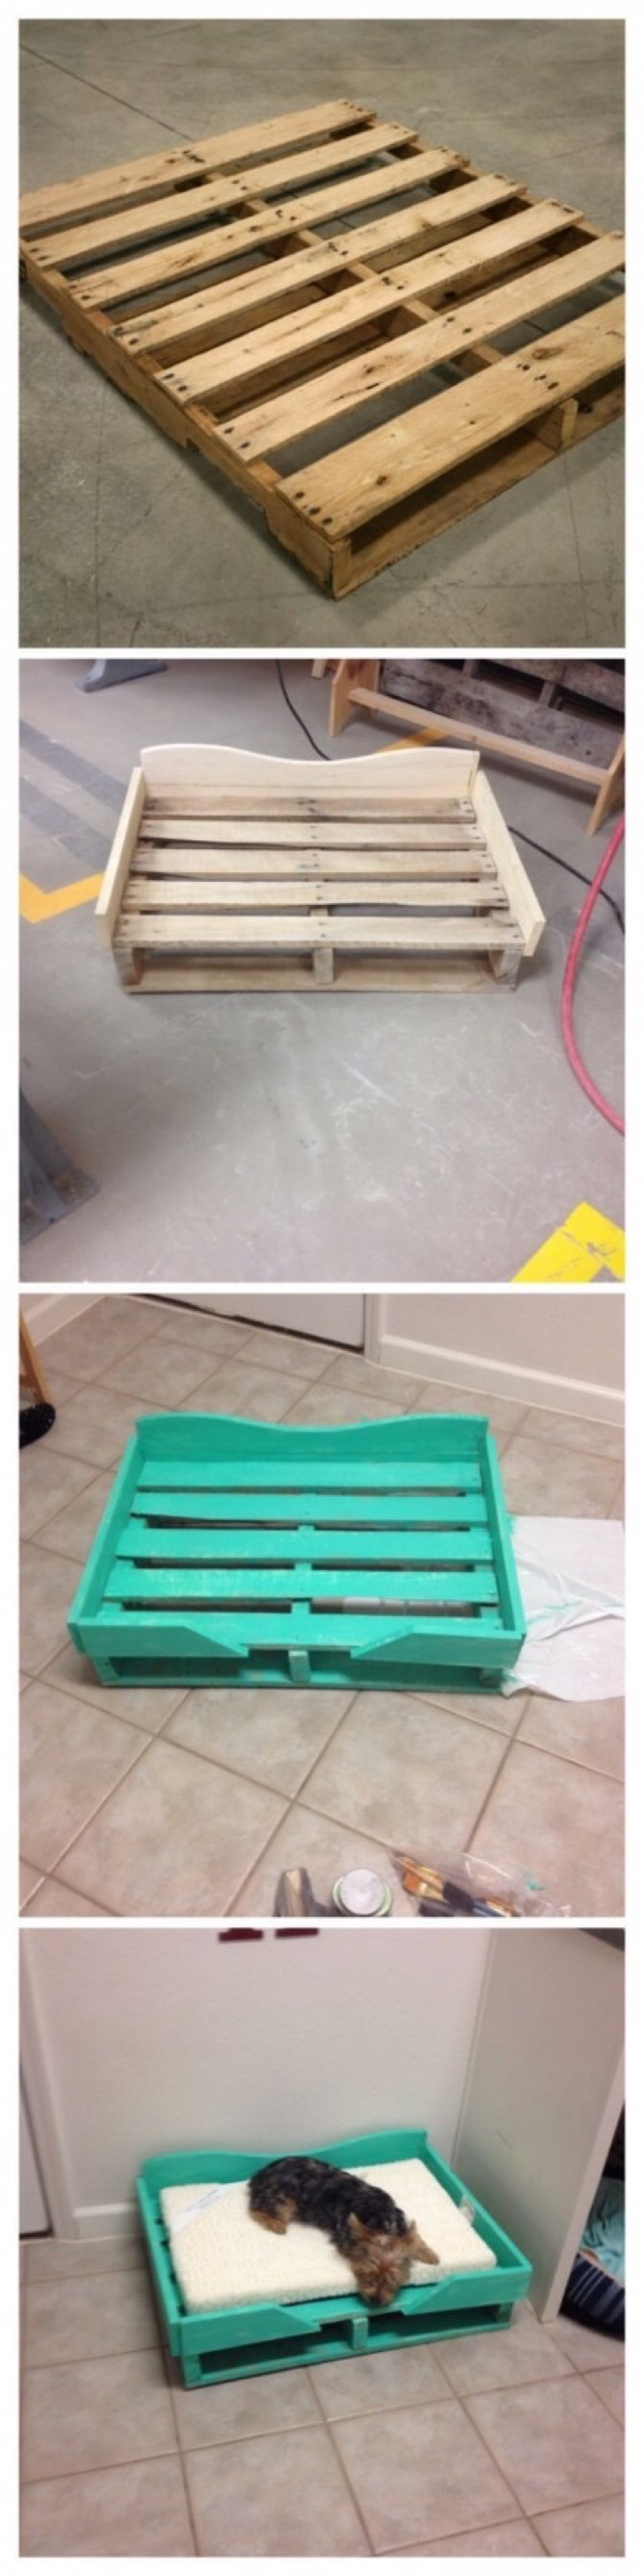 the-best-diy-wood-pallet-decor-and-craft-ideas-34-420x1680